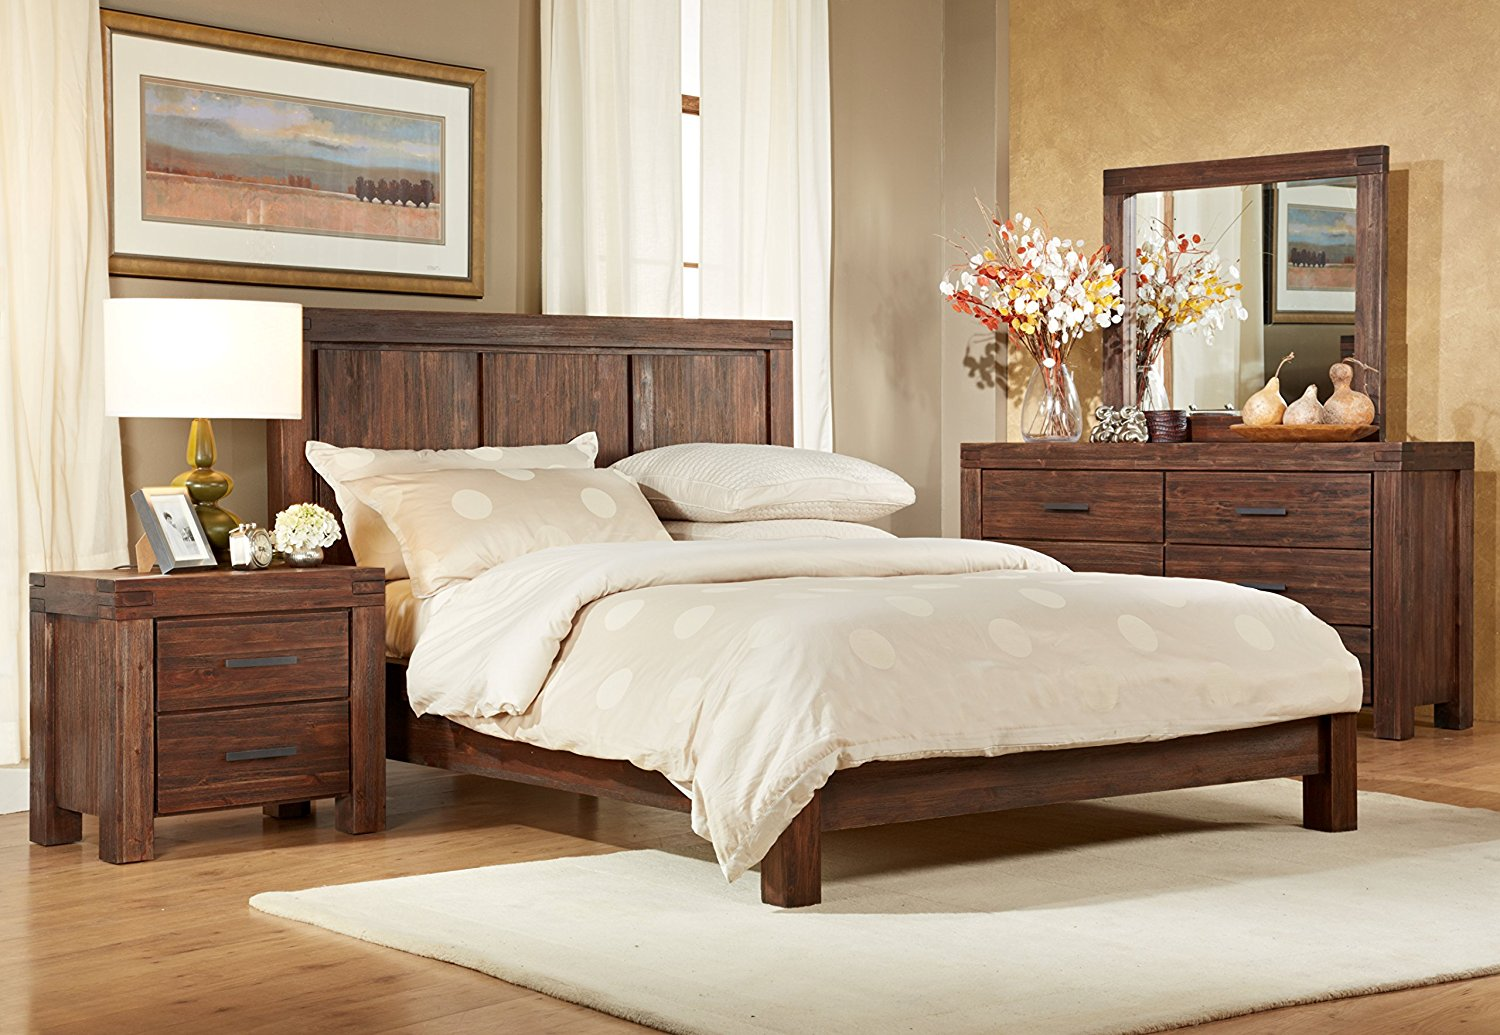 Meadow by Modus Platform Bedroom Set